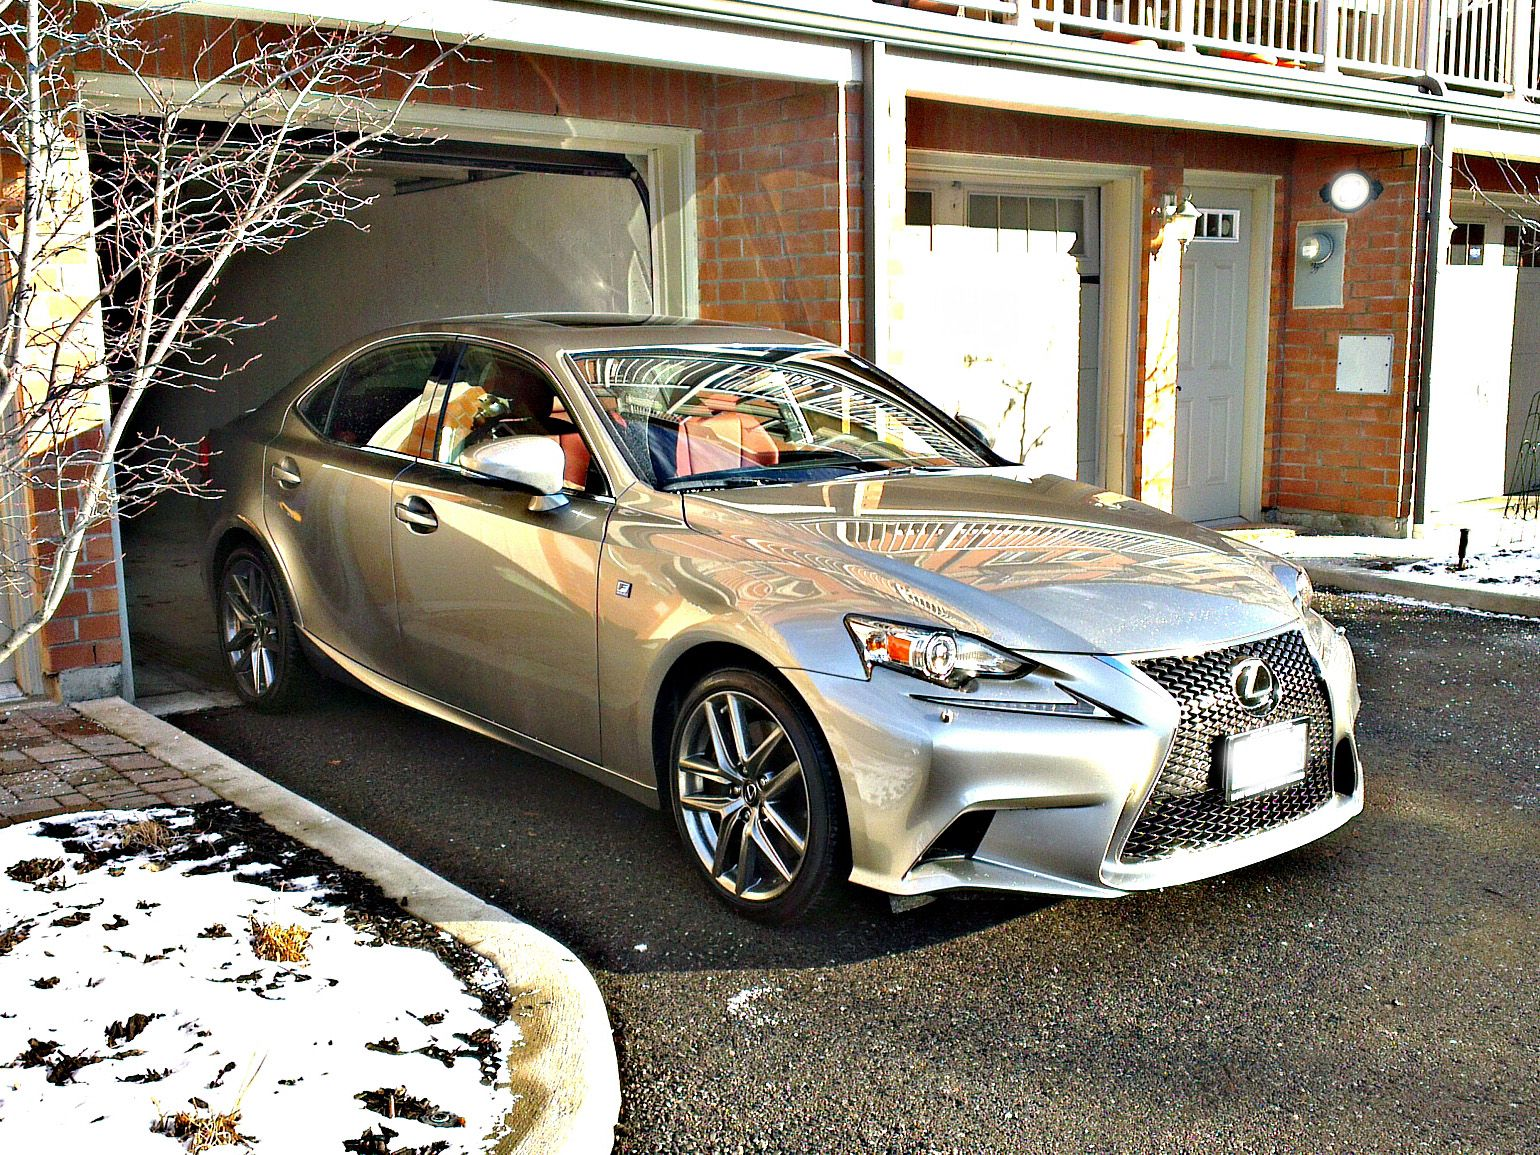 2015 Lexus Is350 F Sport In Atomic Silver Hoping To Have One This Wkend Soooo Excited Lexus Isf Lexus Rims For Cars